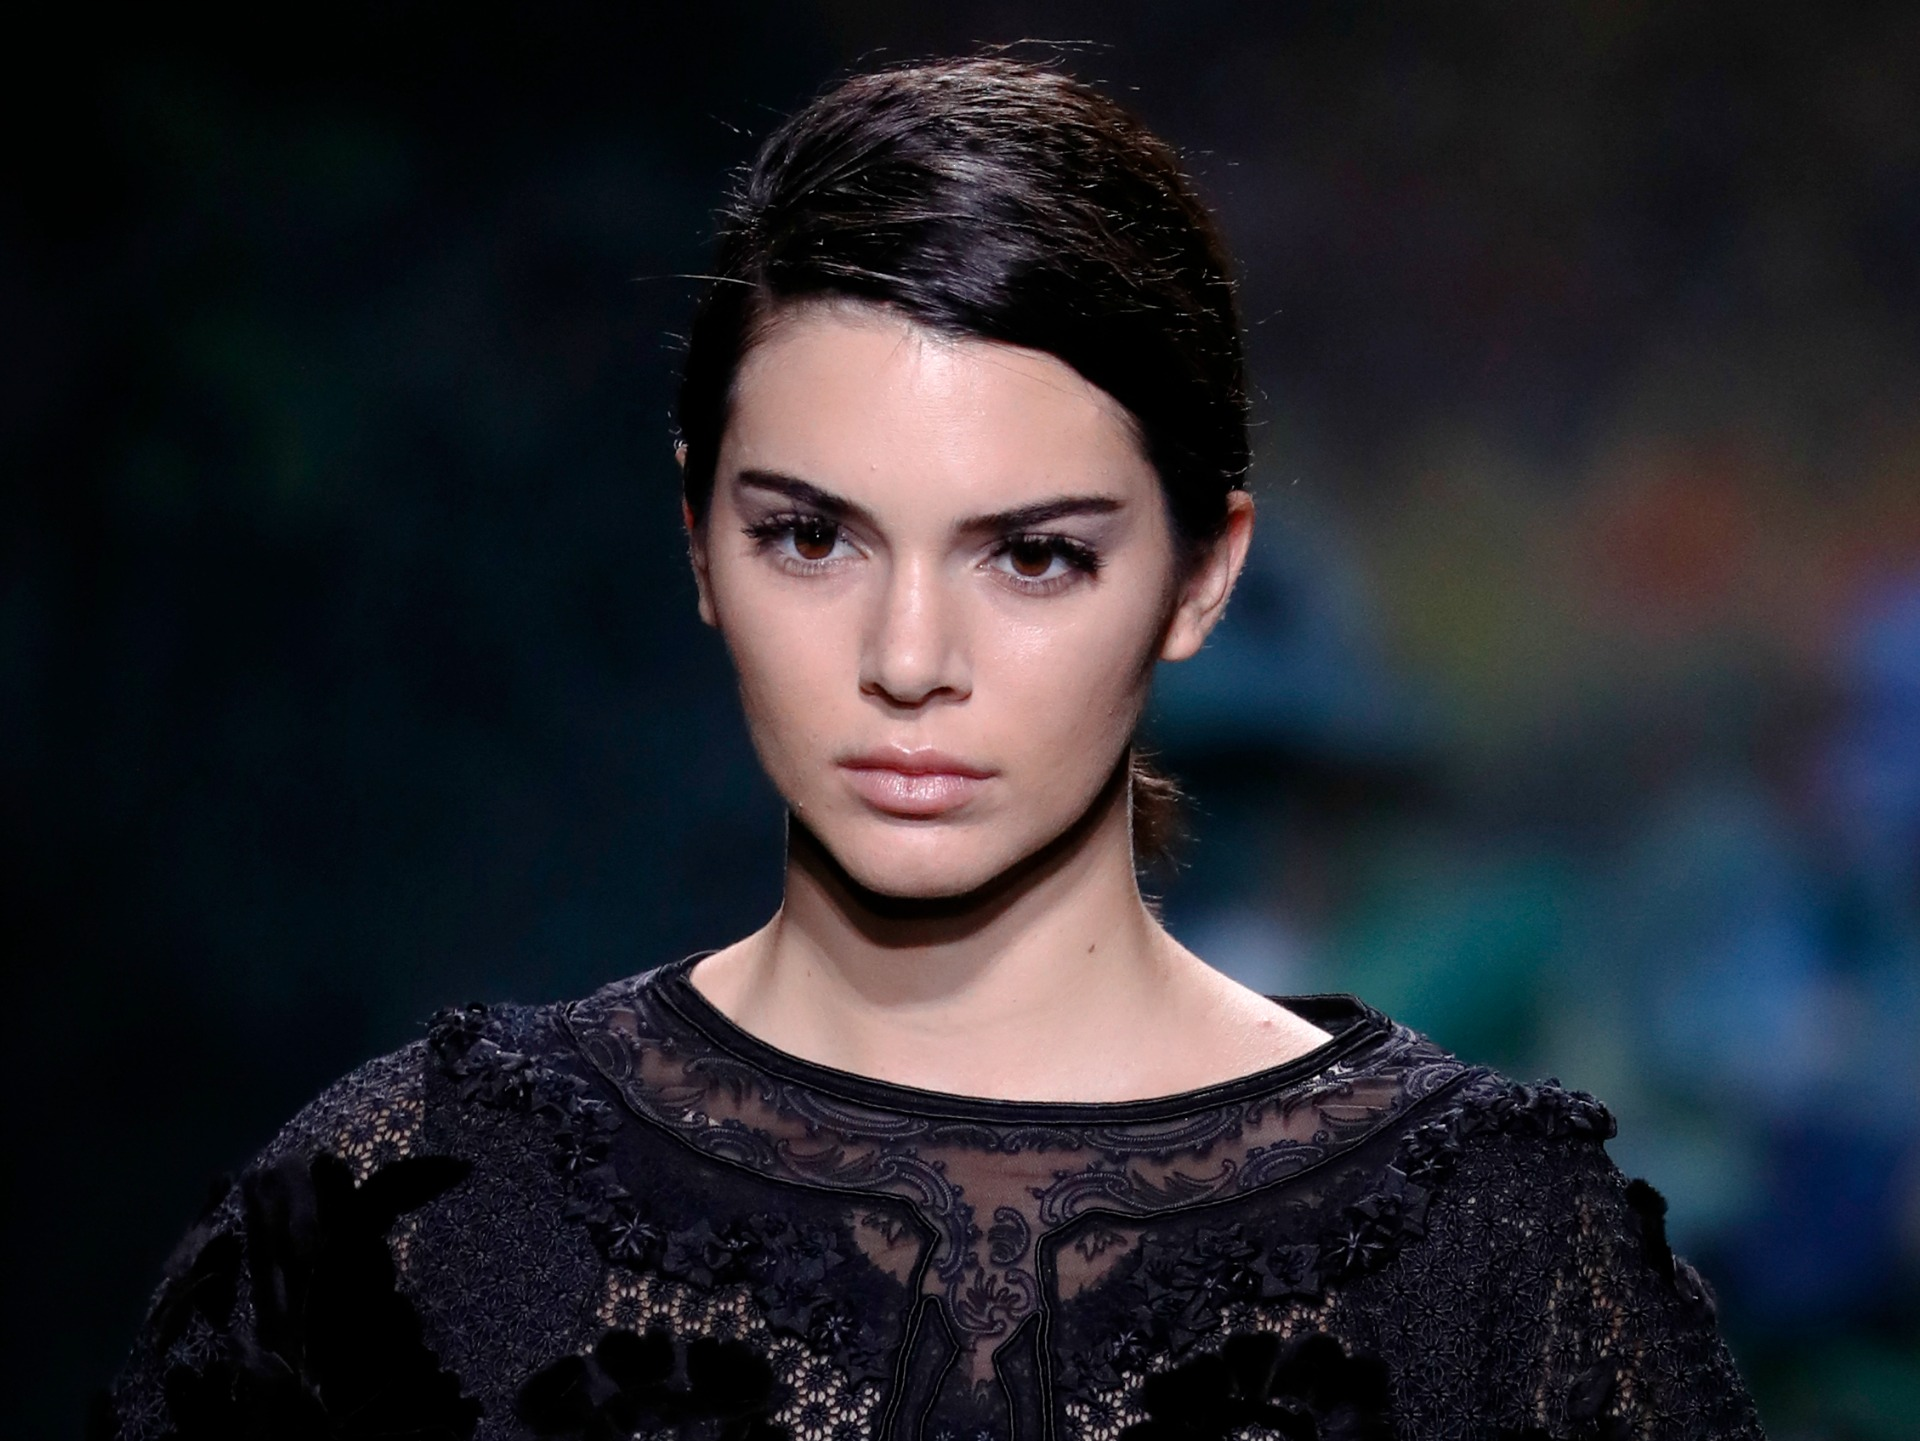 Kendall Jenner gets restraining order against stalker